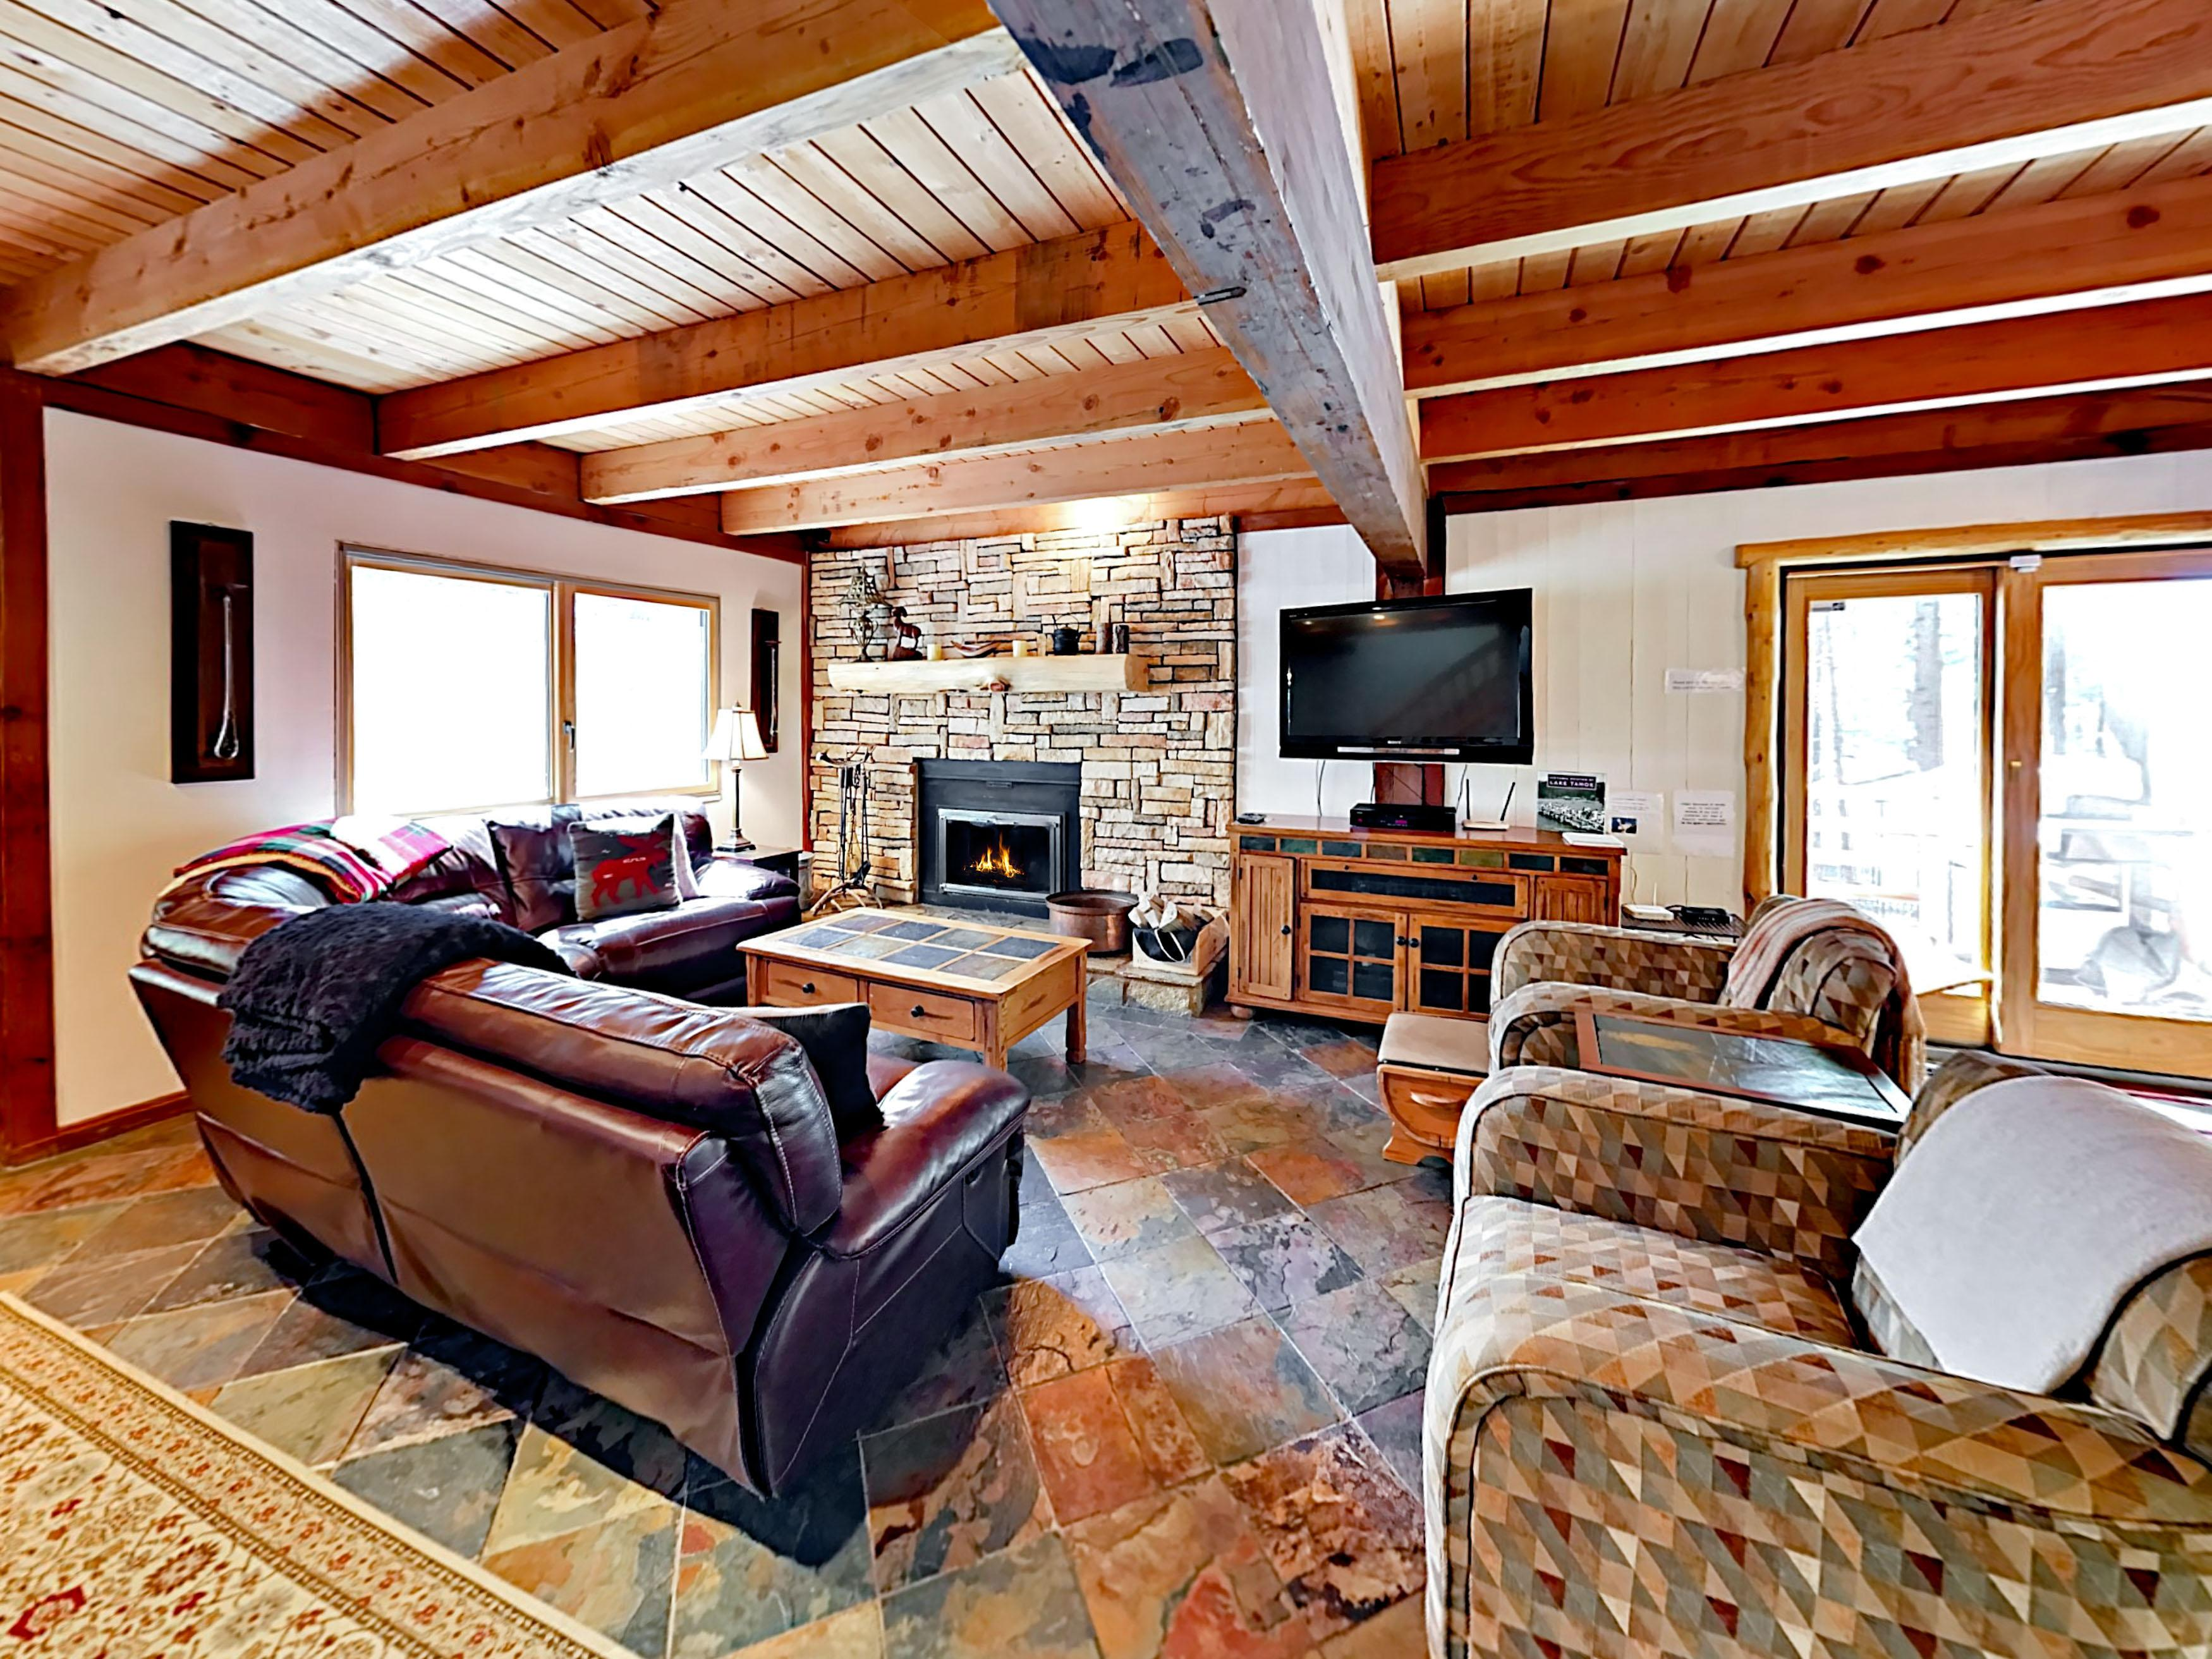 Welcome to South Lake Tahoe! Your home is professionally managed by TurnKey Vacation Rentals.